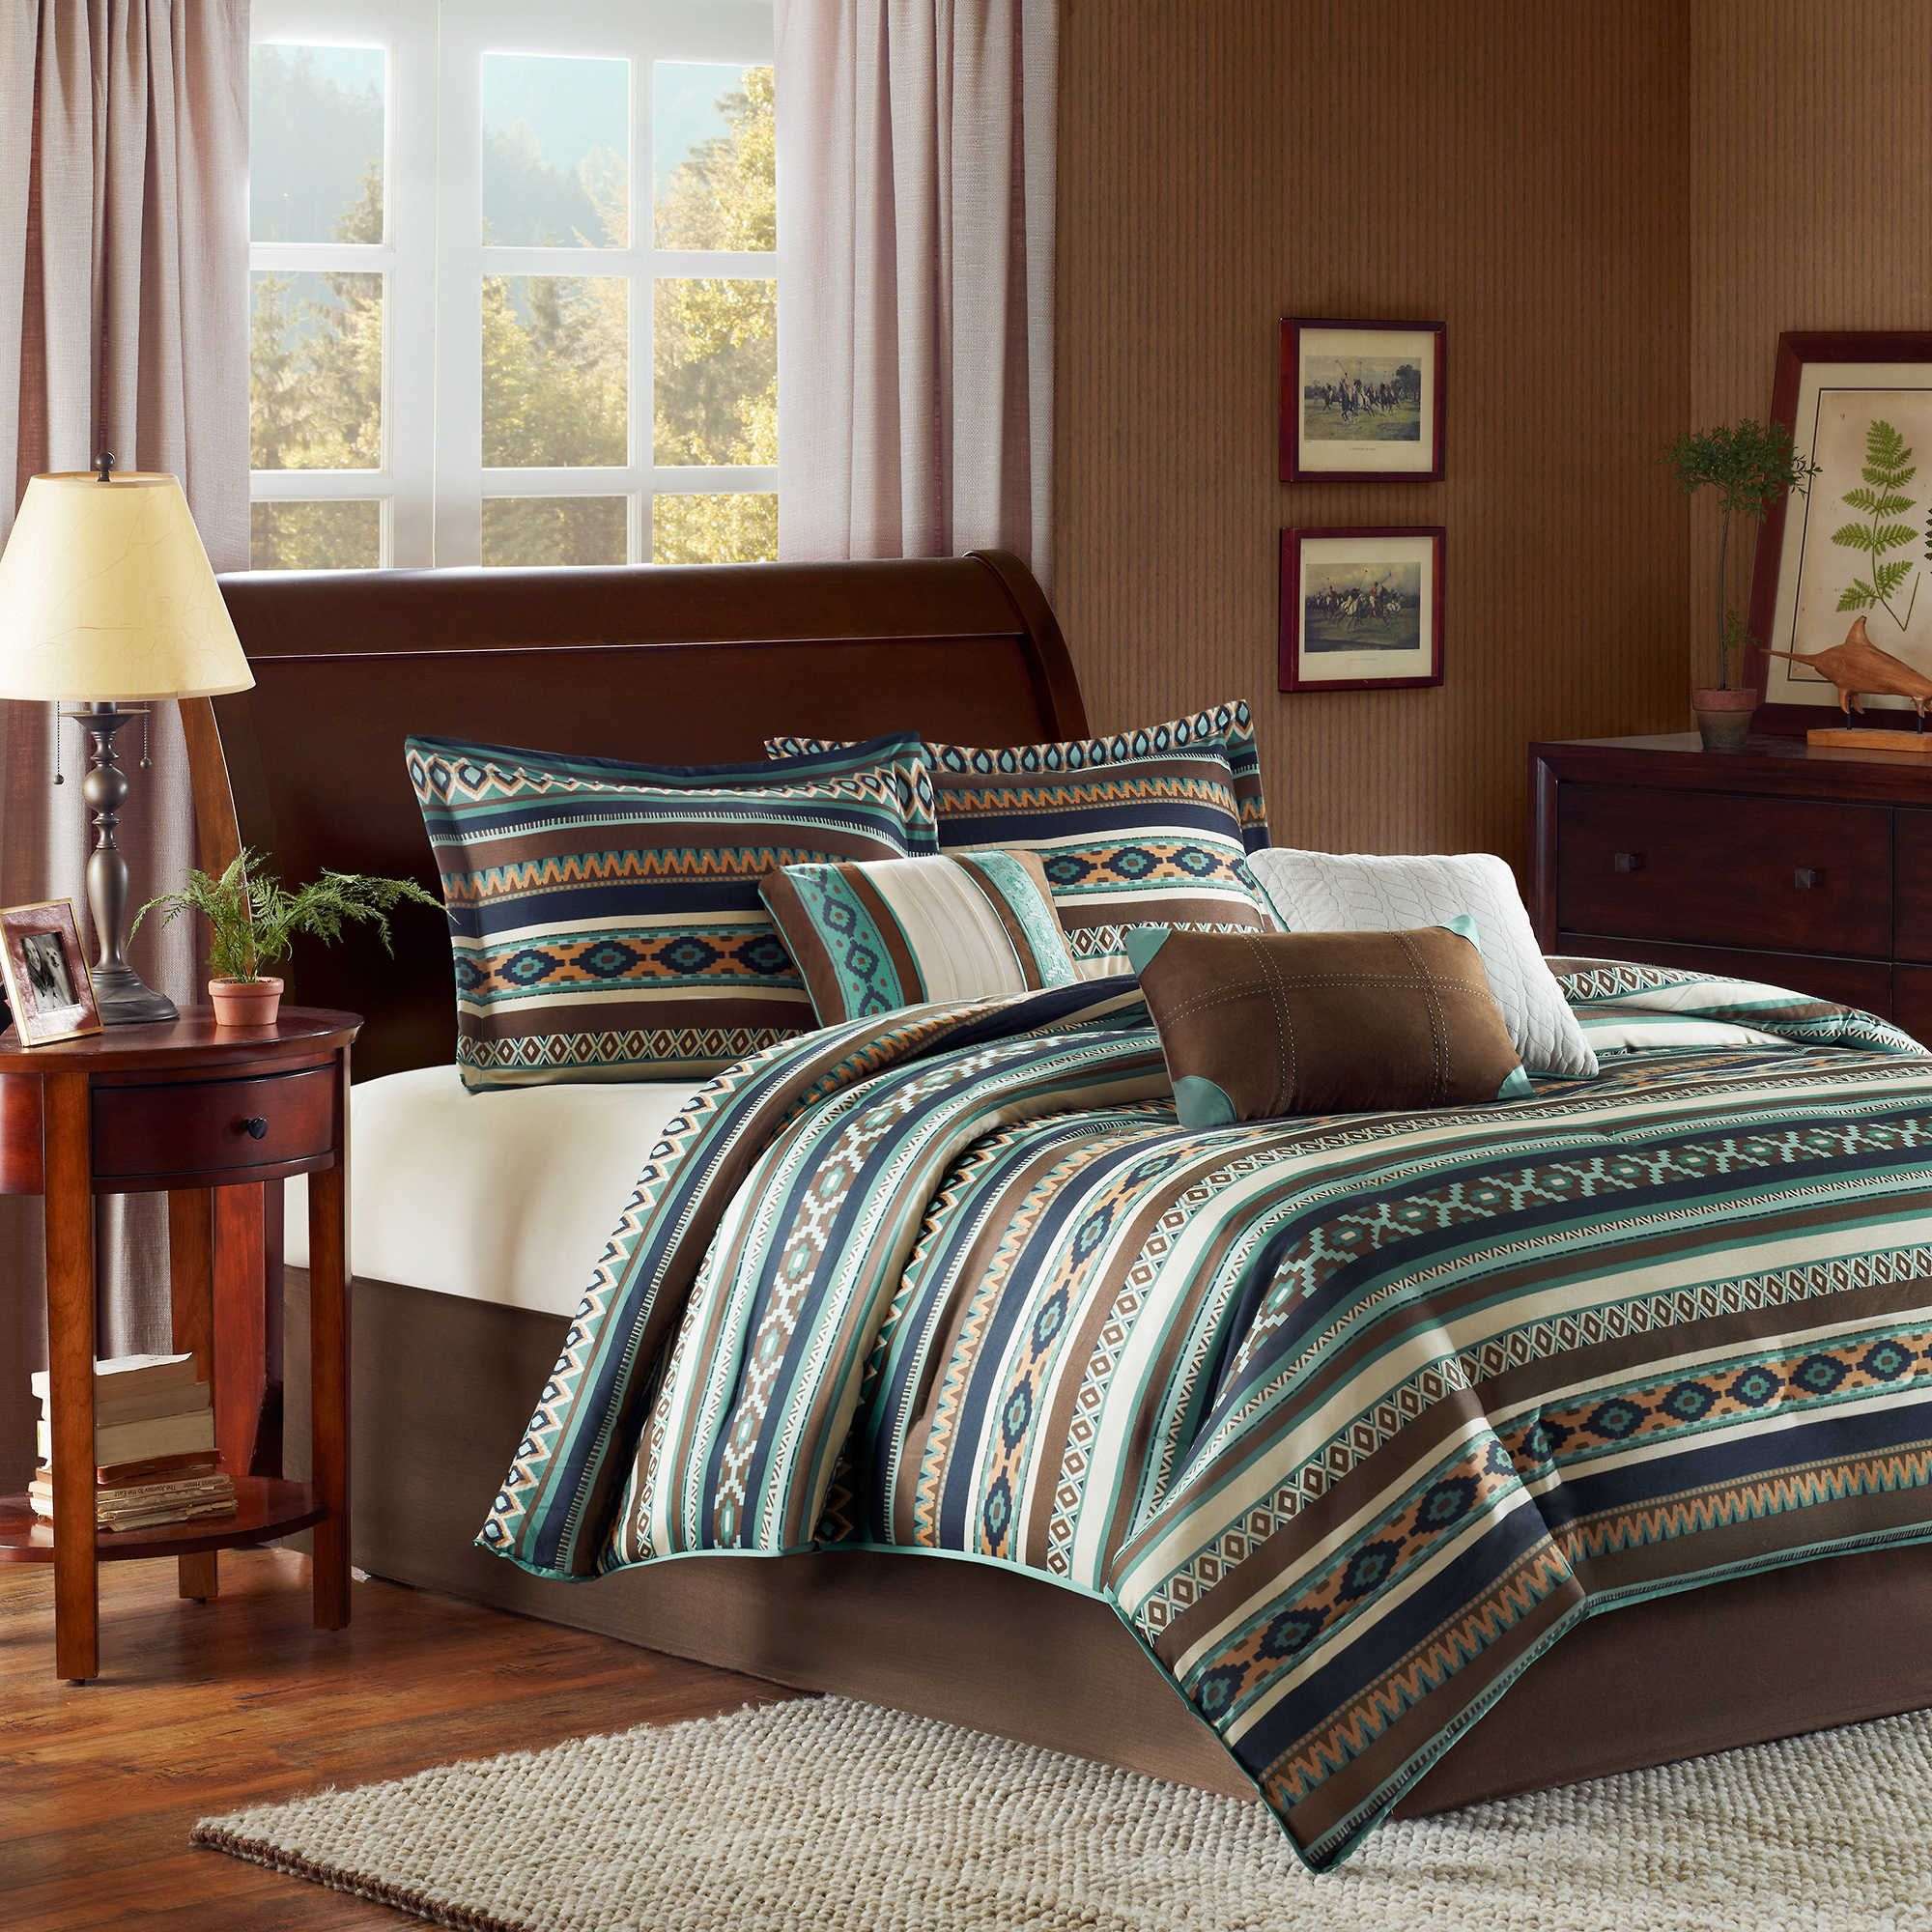 Fall in Love With Southwestern Décor Comforter sets